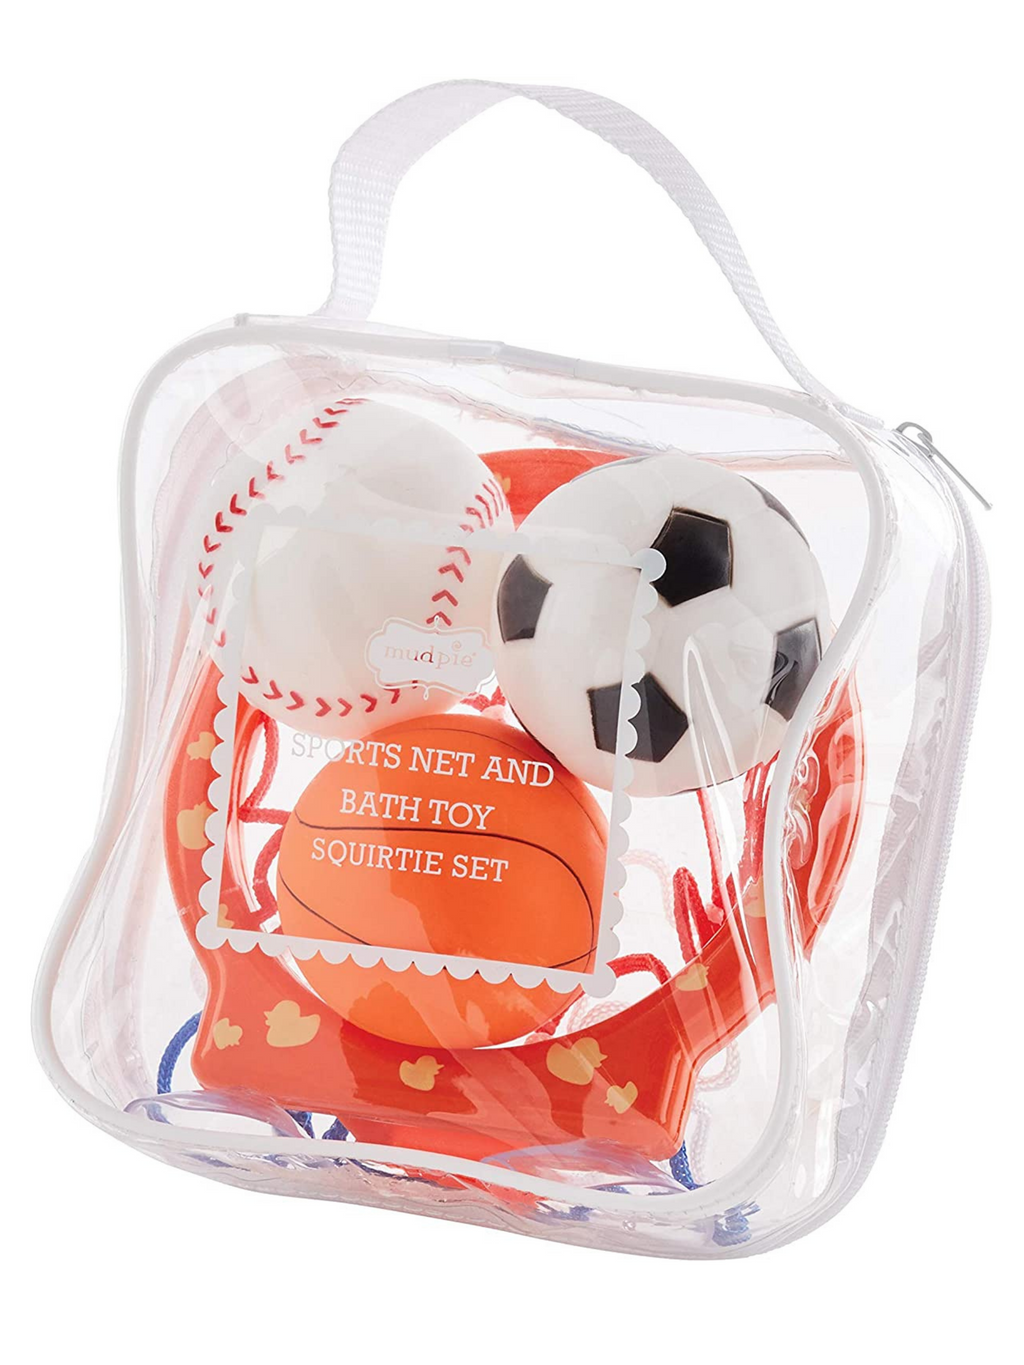 Sports Ball Bath Toy